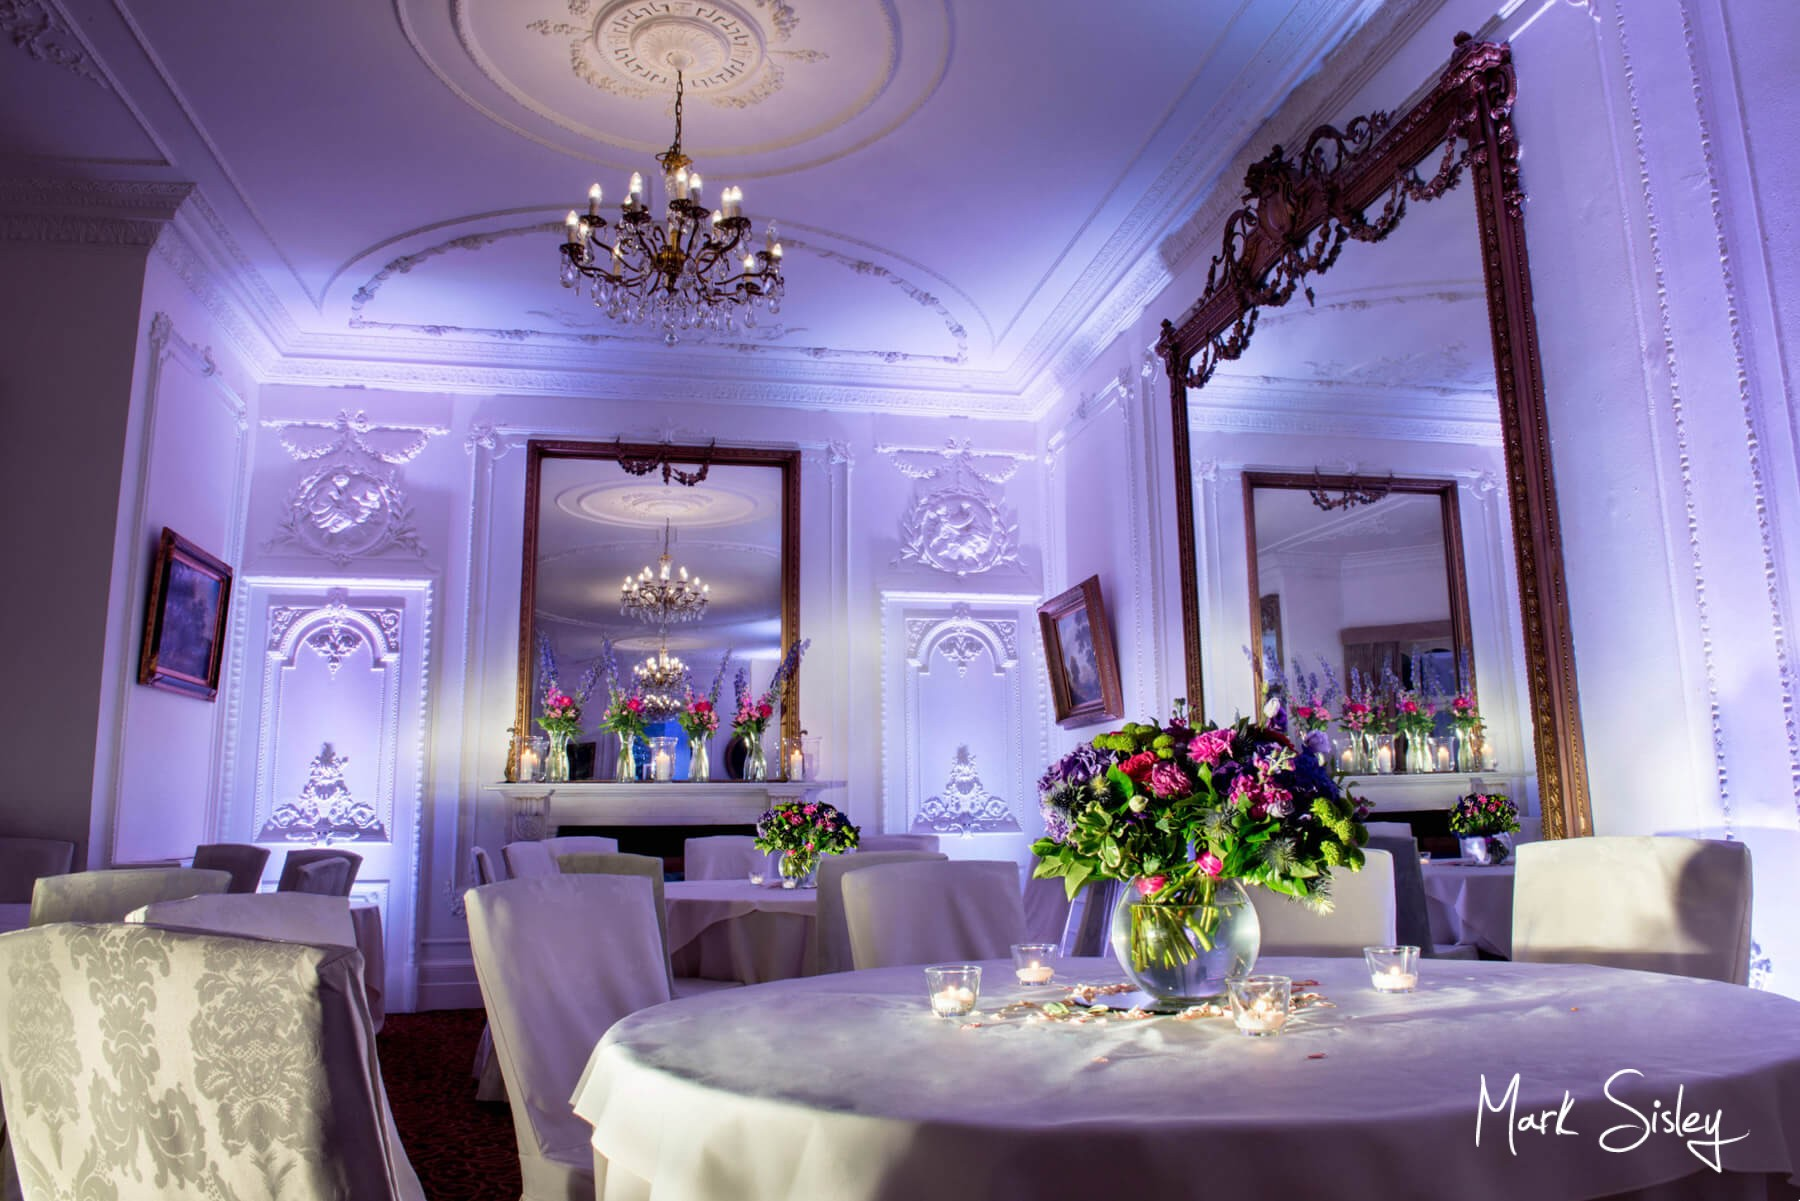 Buckinghamshire Wedding Photography - Taplow House Hotel - interiors image of dining room